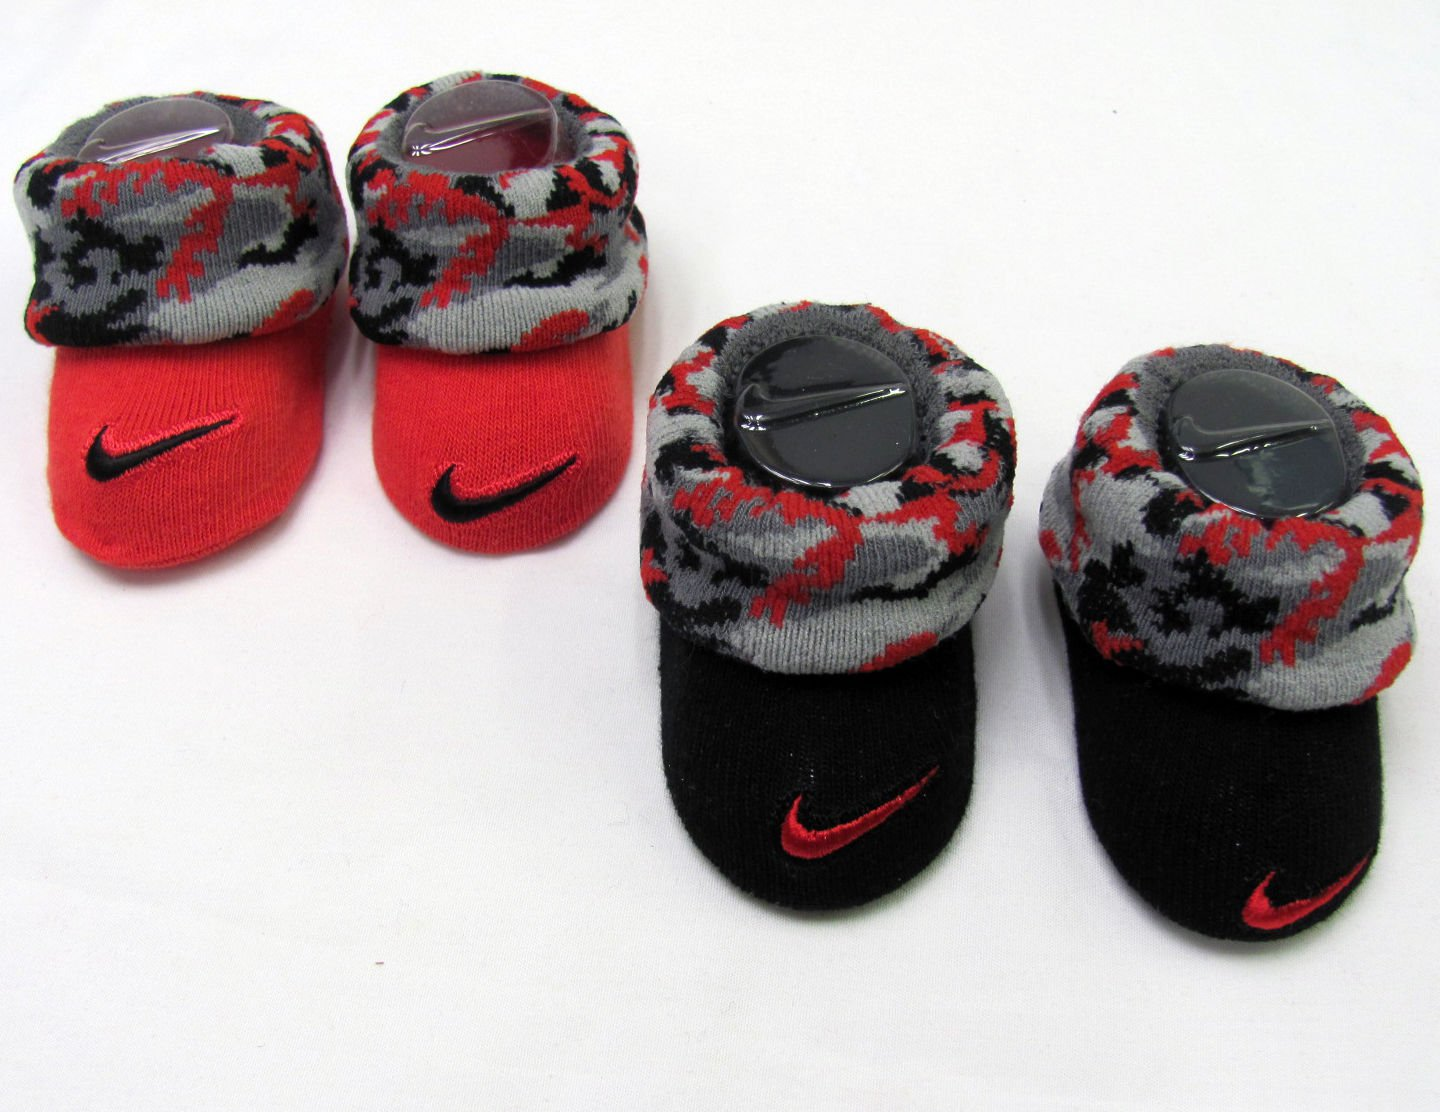 Nike infant booties 0 6 months gray black red camo socks 2 pair